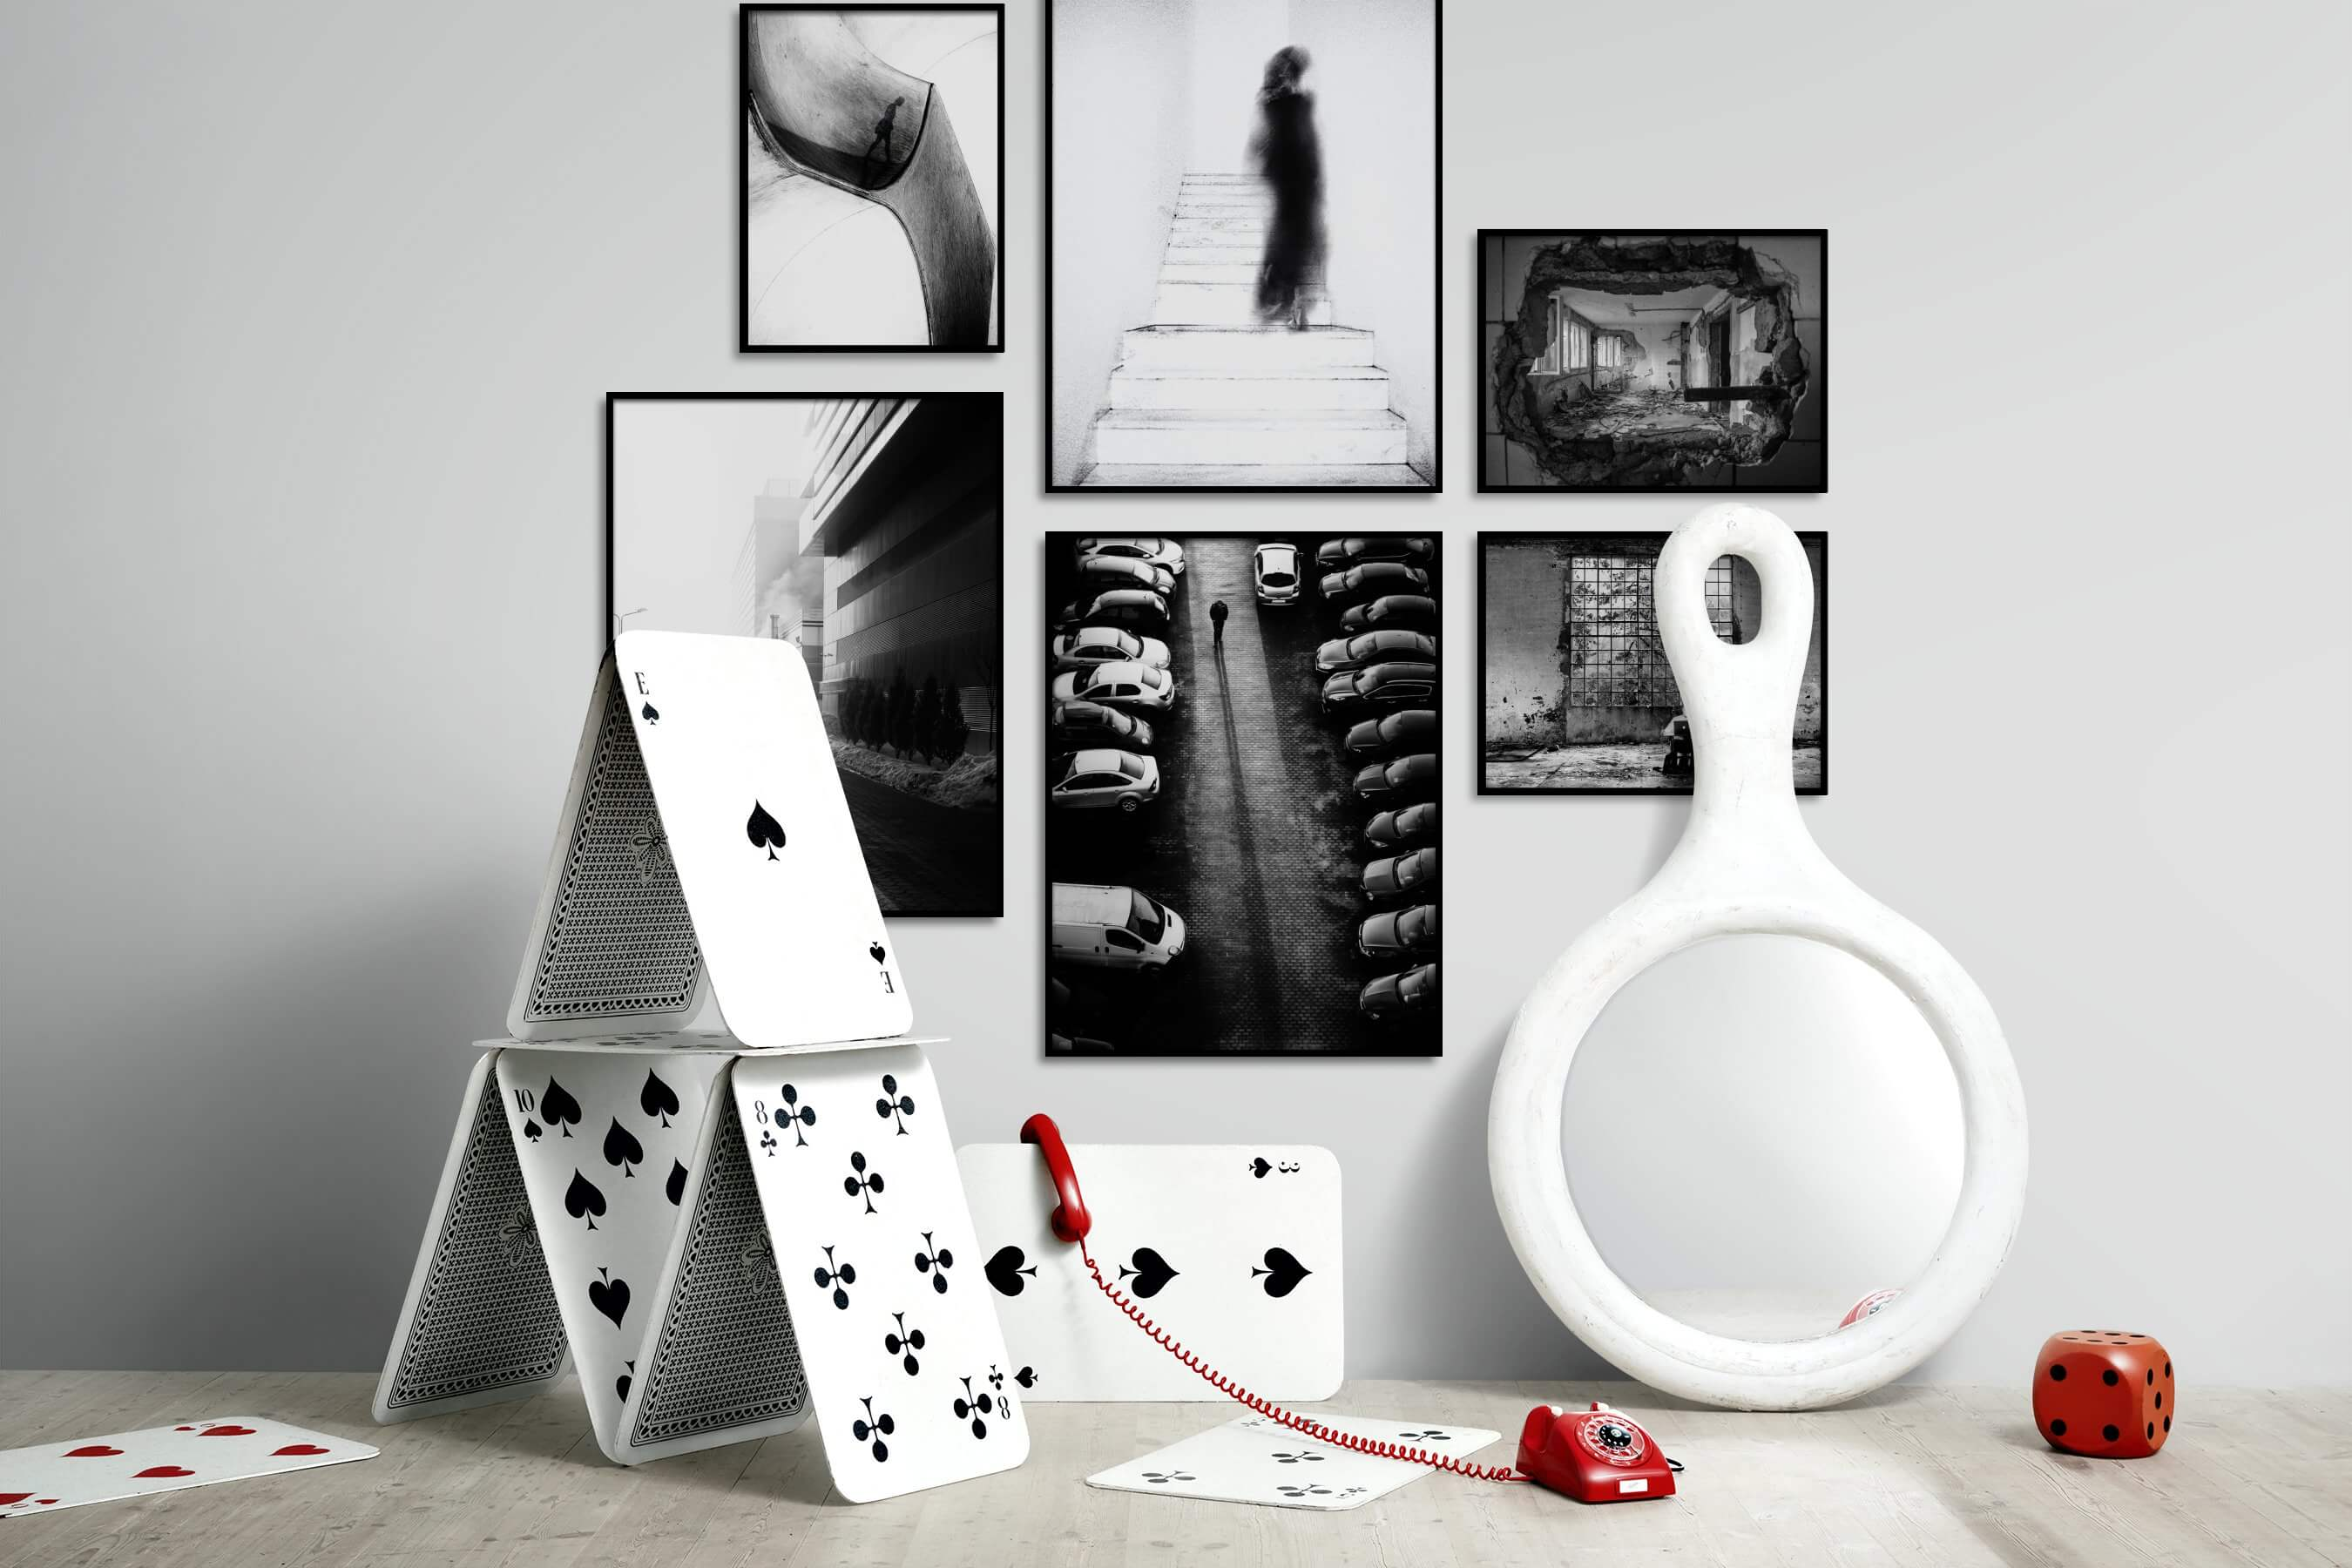 Gallery wall idea with six framed pictures arranged on a wall depicting Artsy, Black & White, For the Moderate, City Life, and Vintage